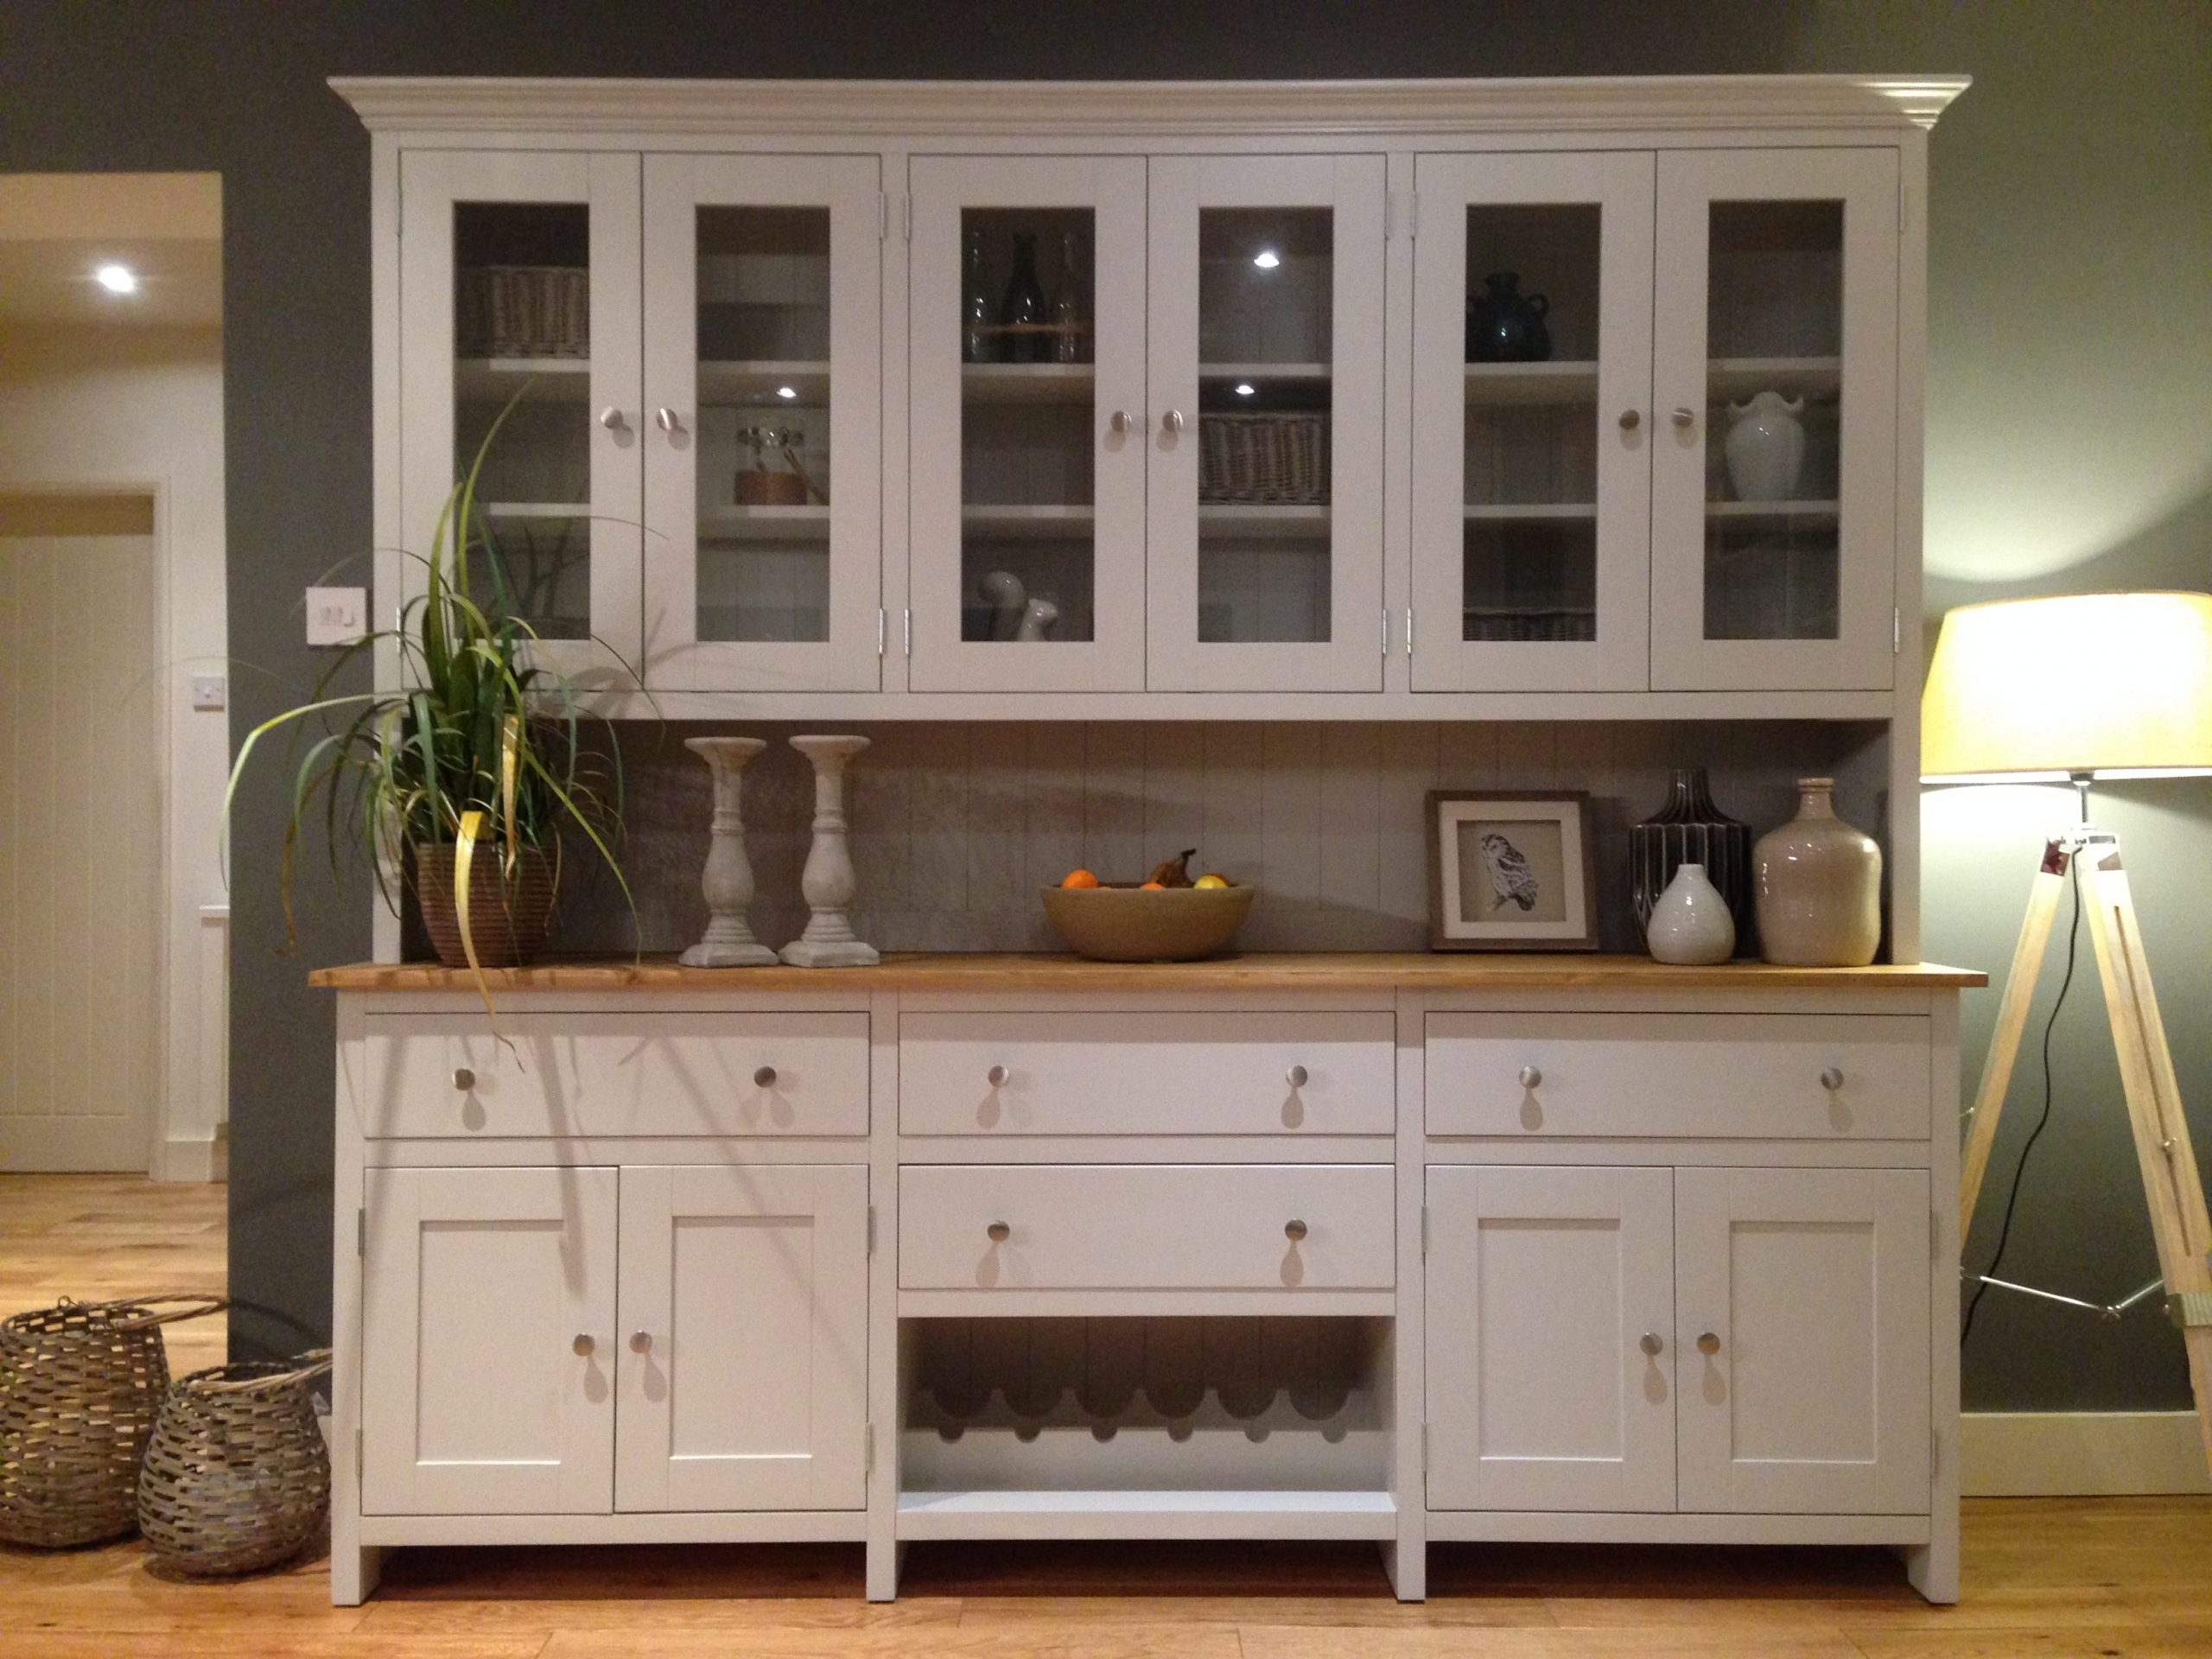 Buy Brand New Painted Pine Welsh Dresser For Your Kitchen In Uk